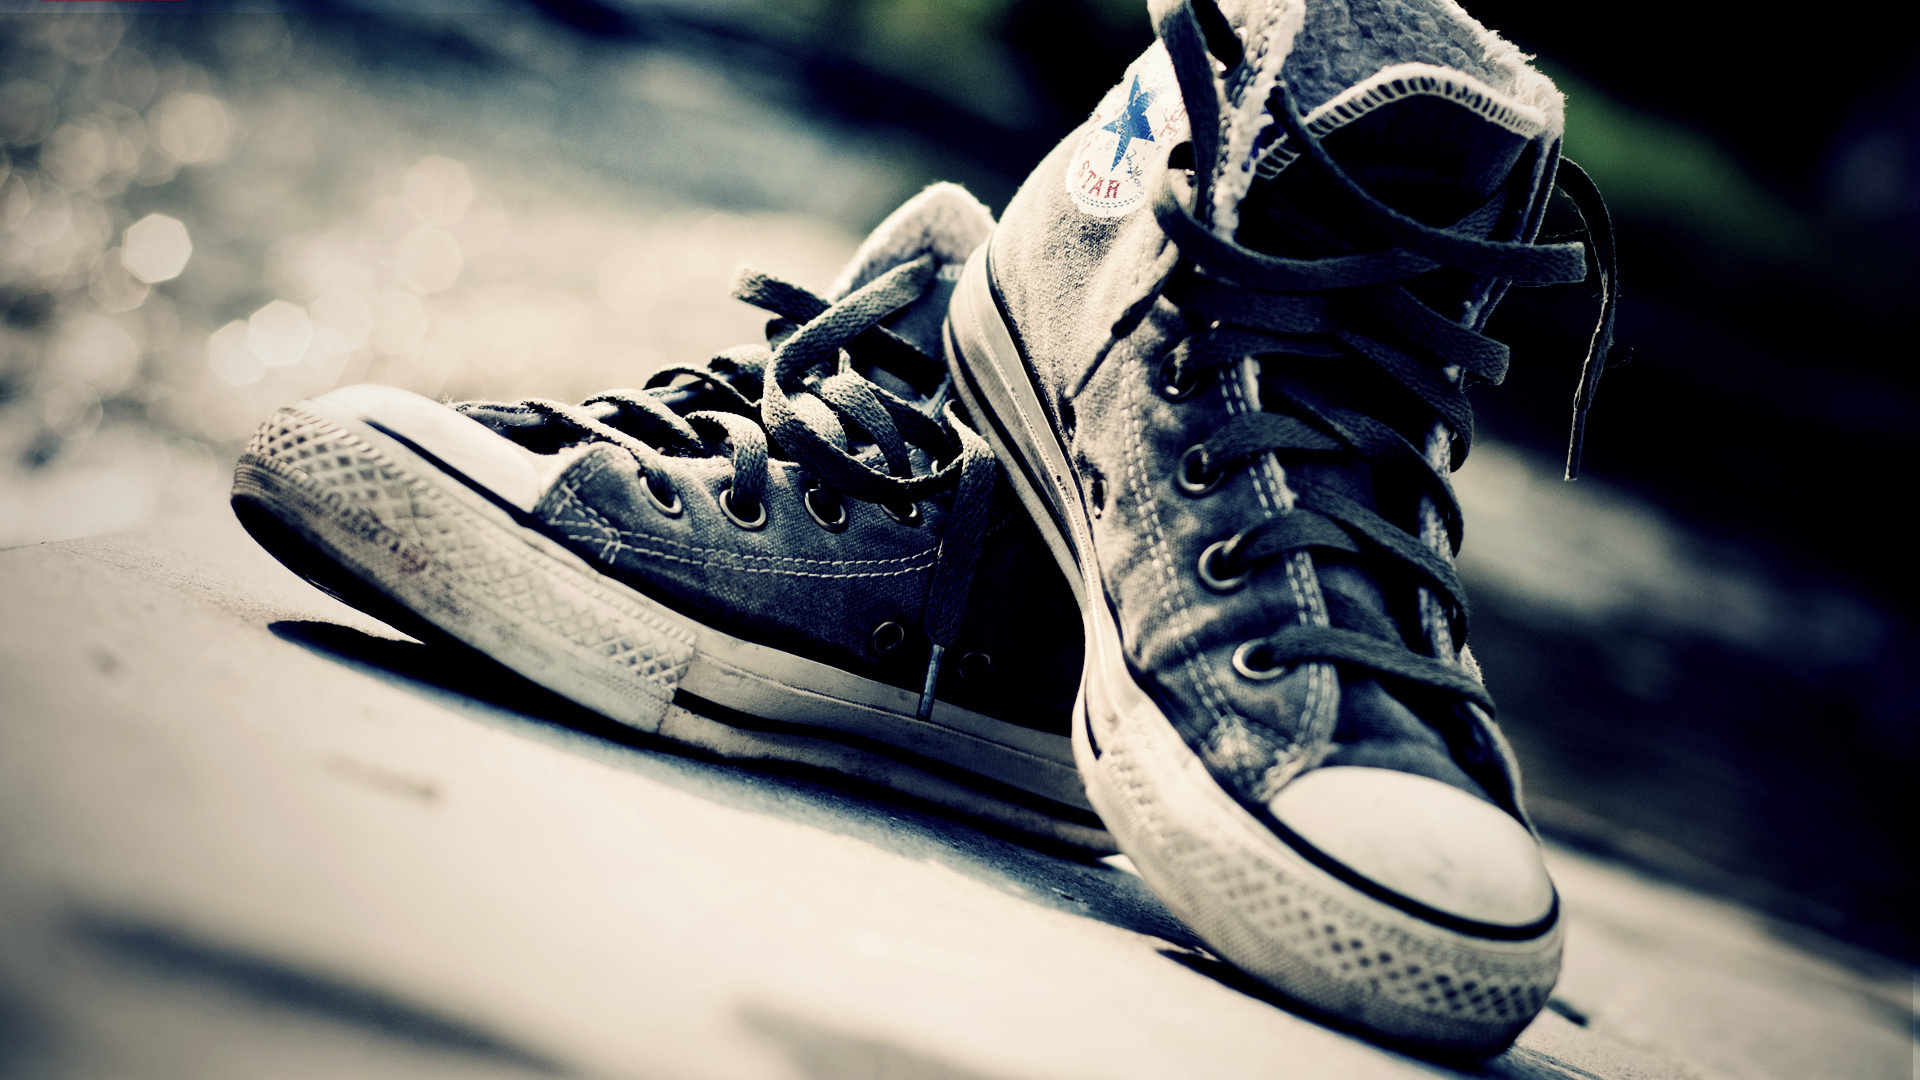 Converse Wallpaper HD